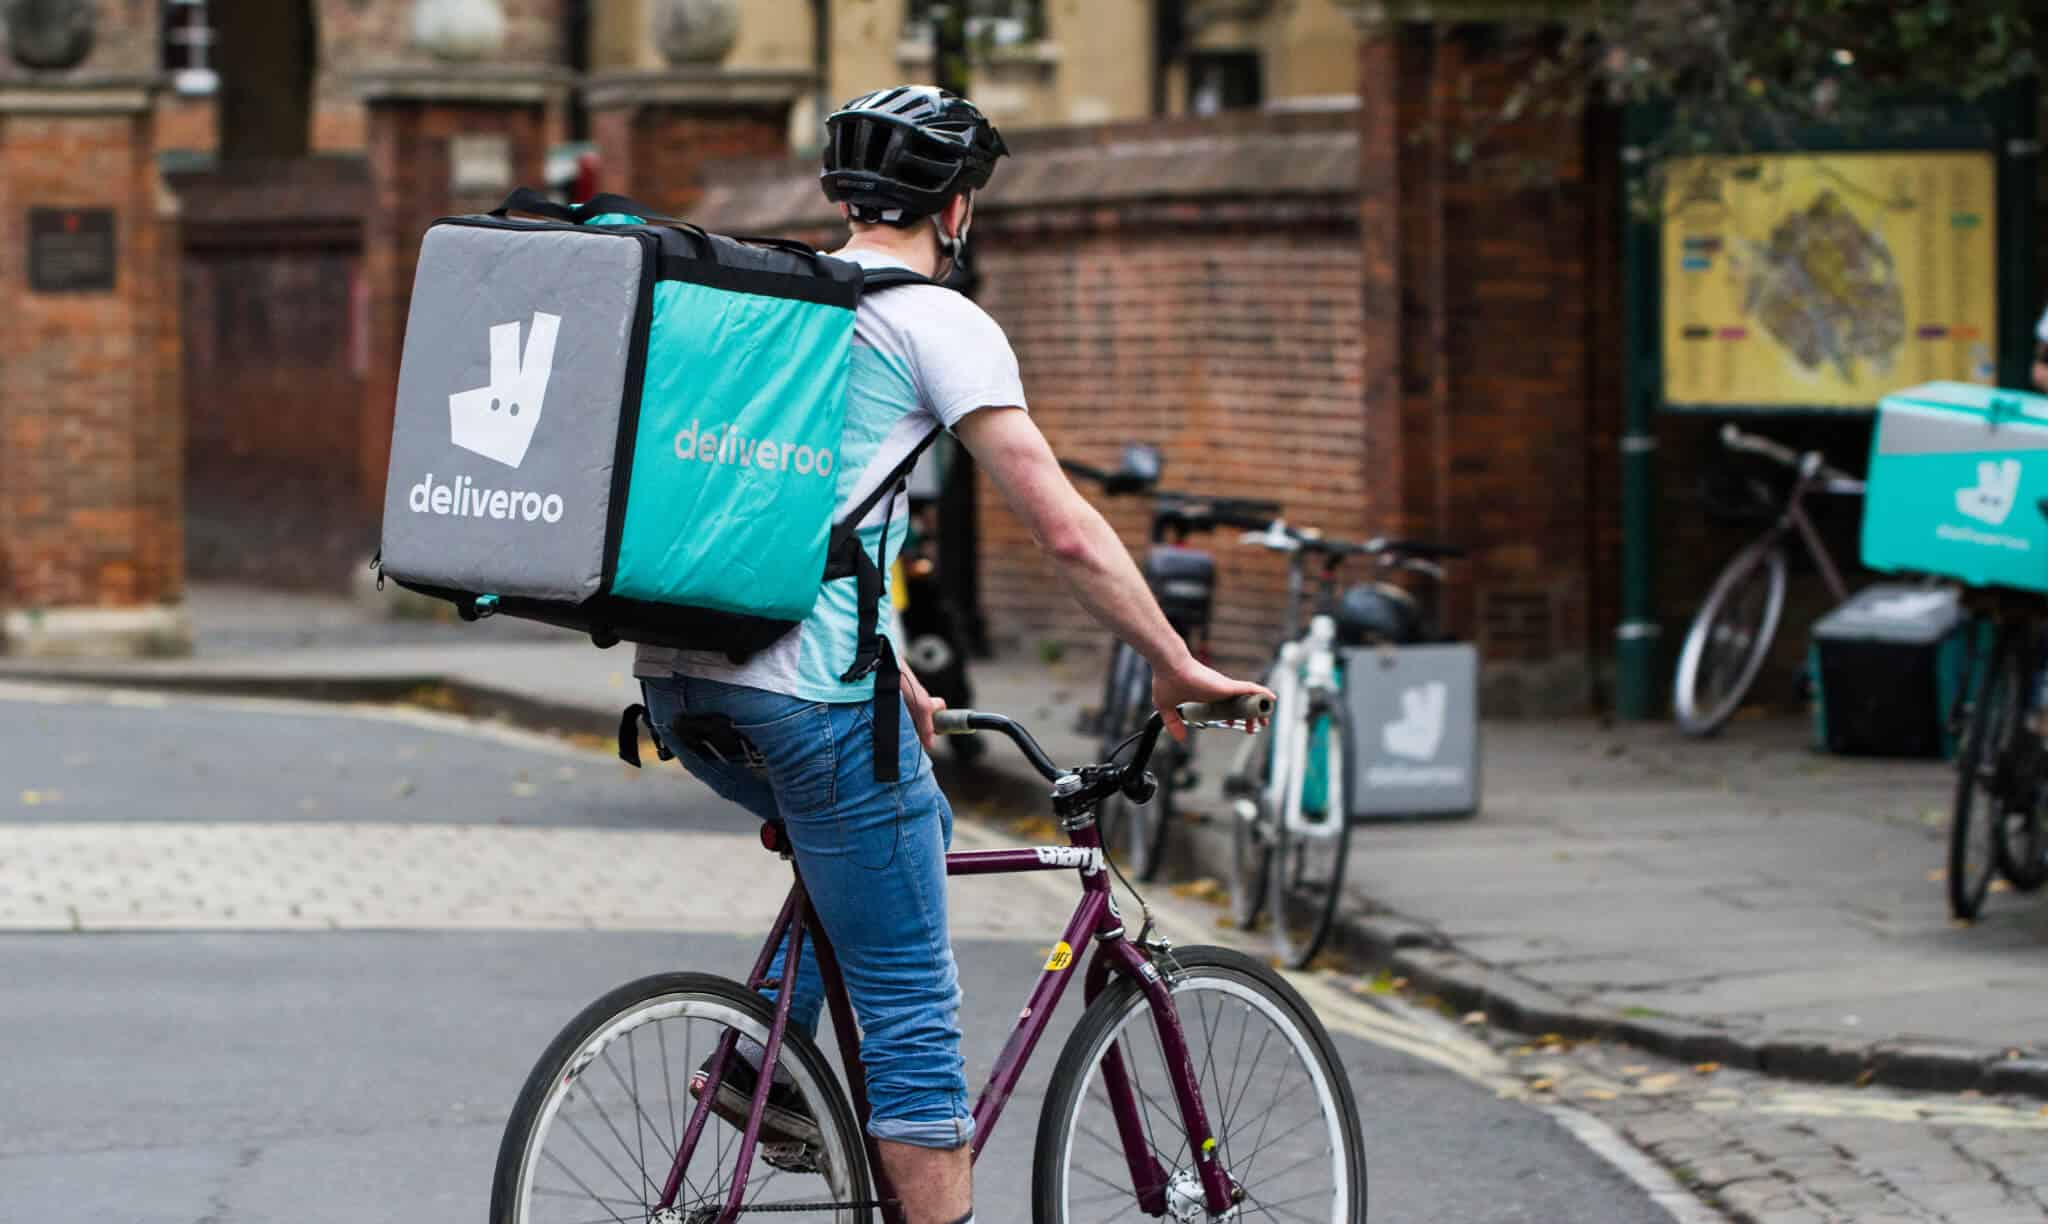 Deliveroo - Working in the